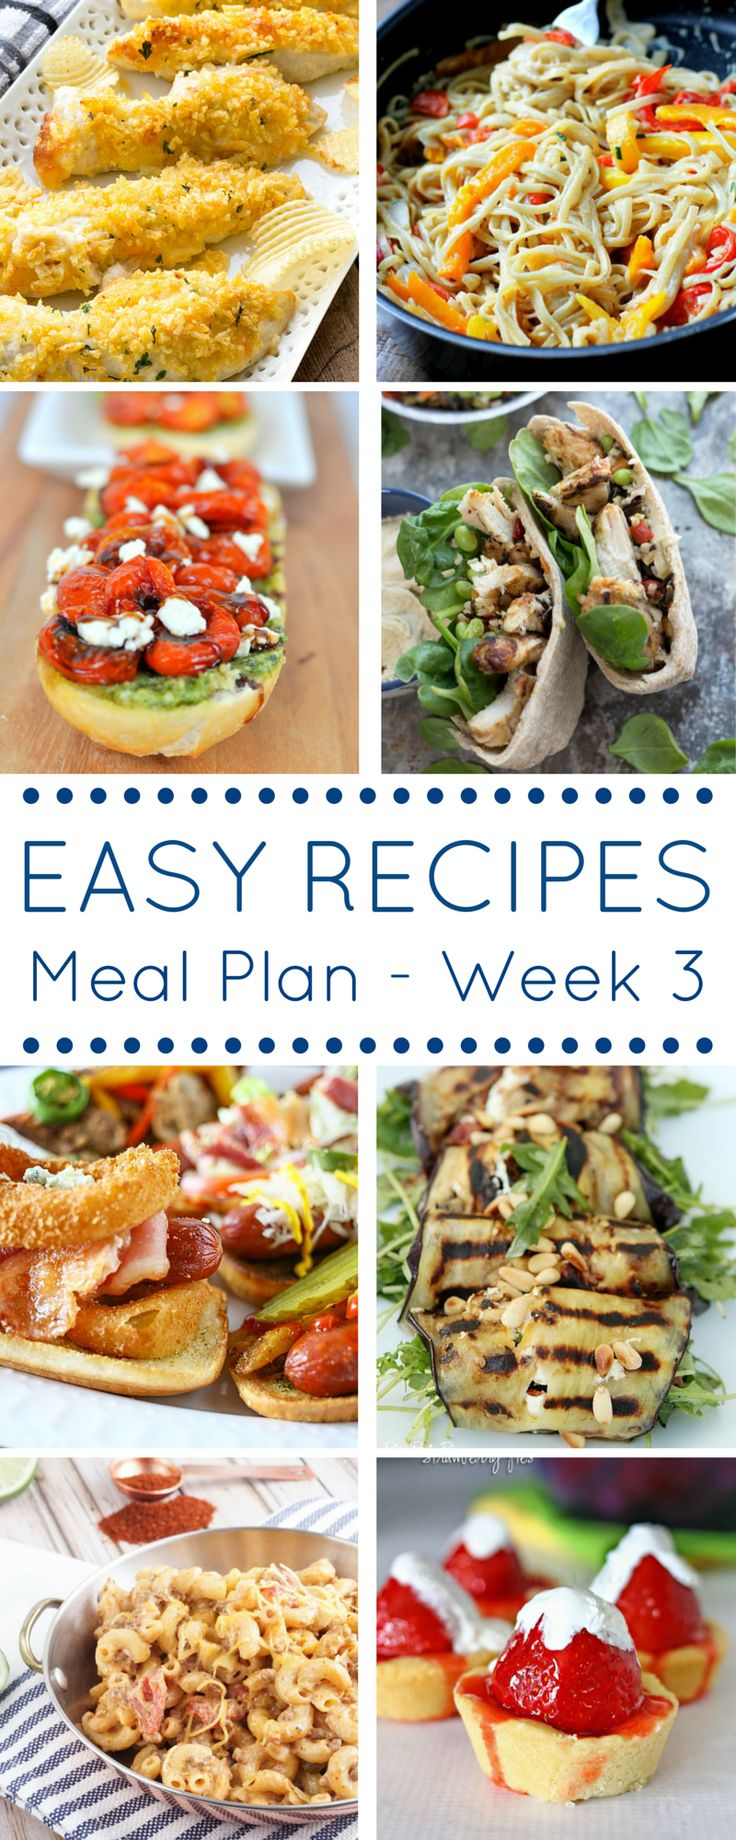 Meal planning for the week just go SO EASY!  Working with 6 other bloggers, I've created a weekly meal plan full of EASY recipes that your whole family will love.